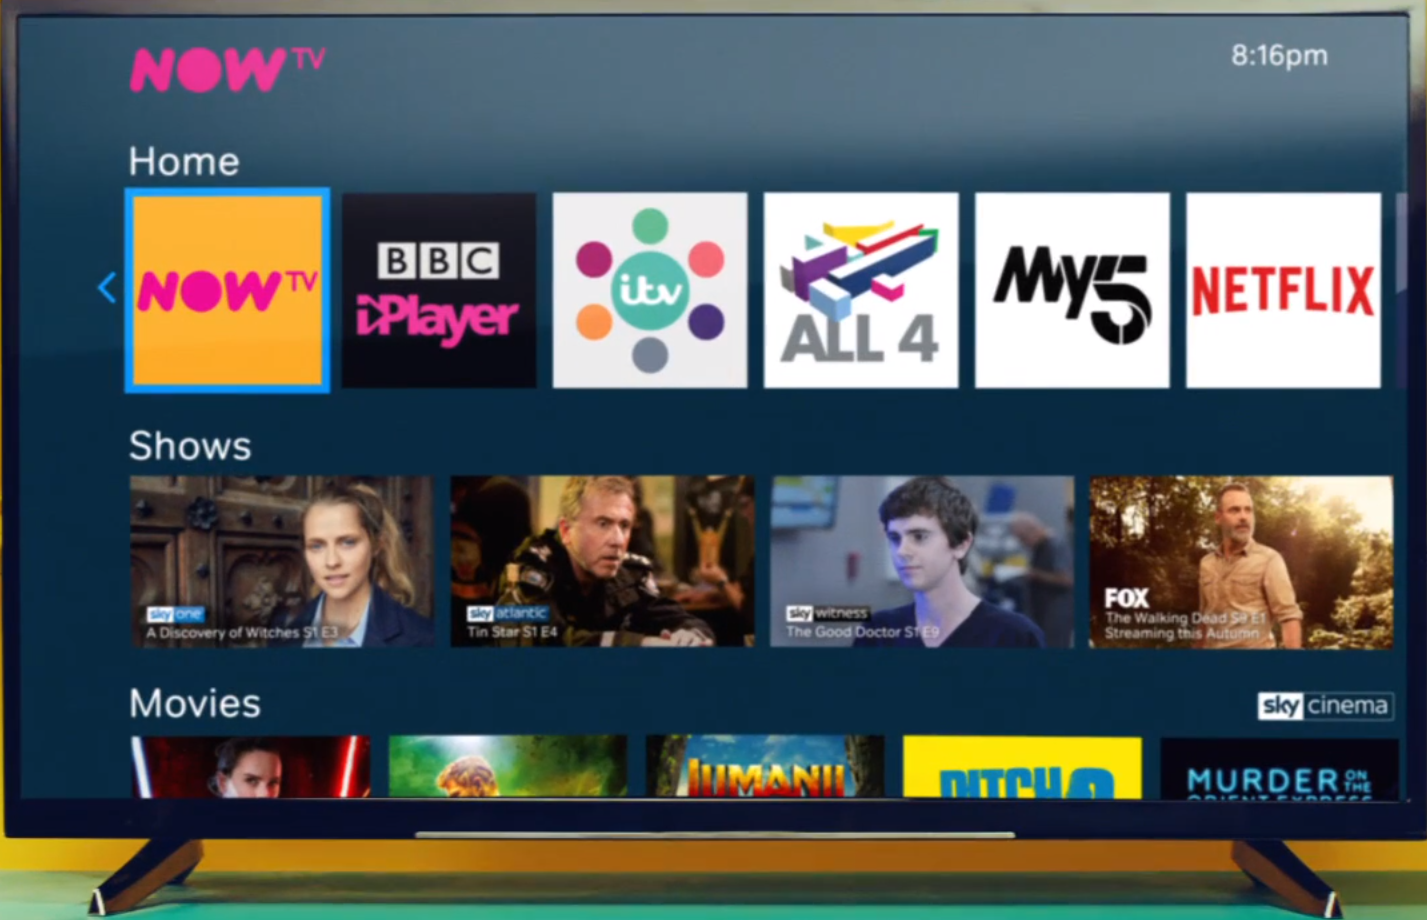 Updated home screen! - Page 3 - NOW TV Community